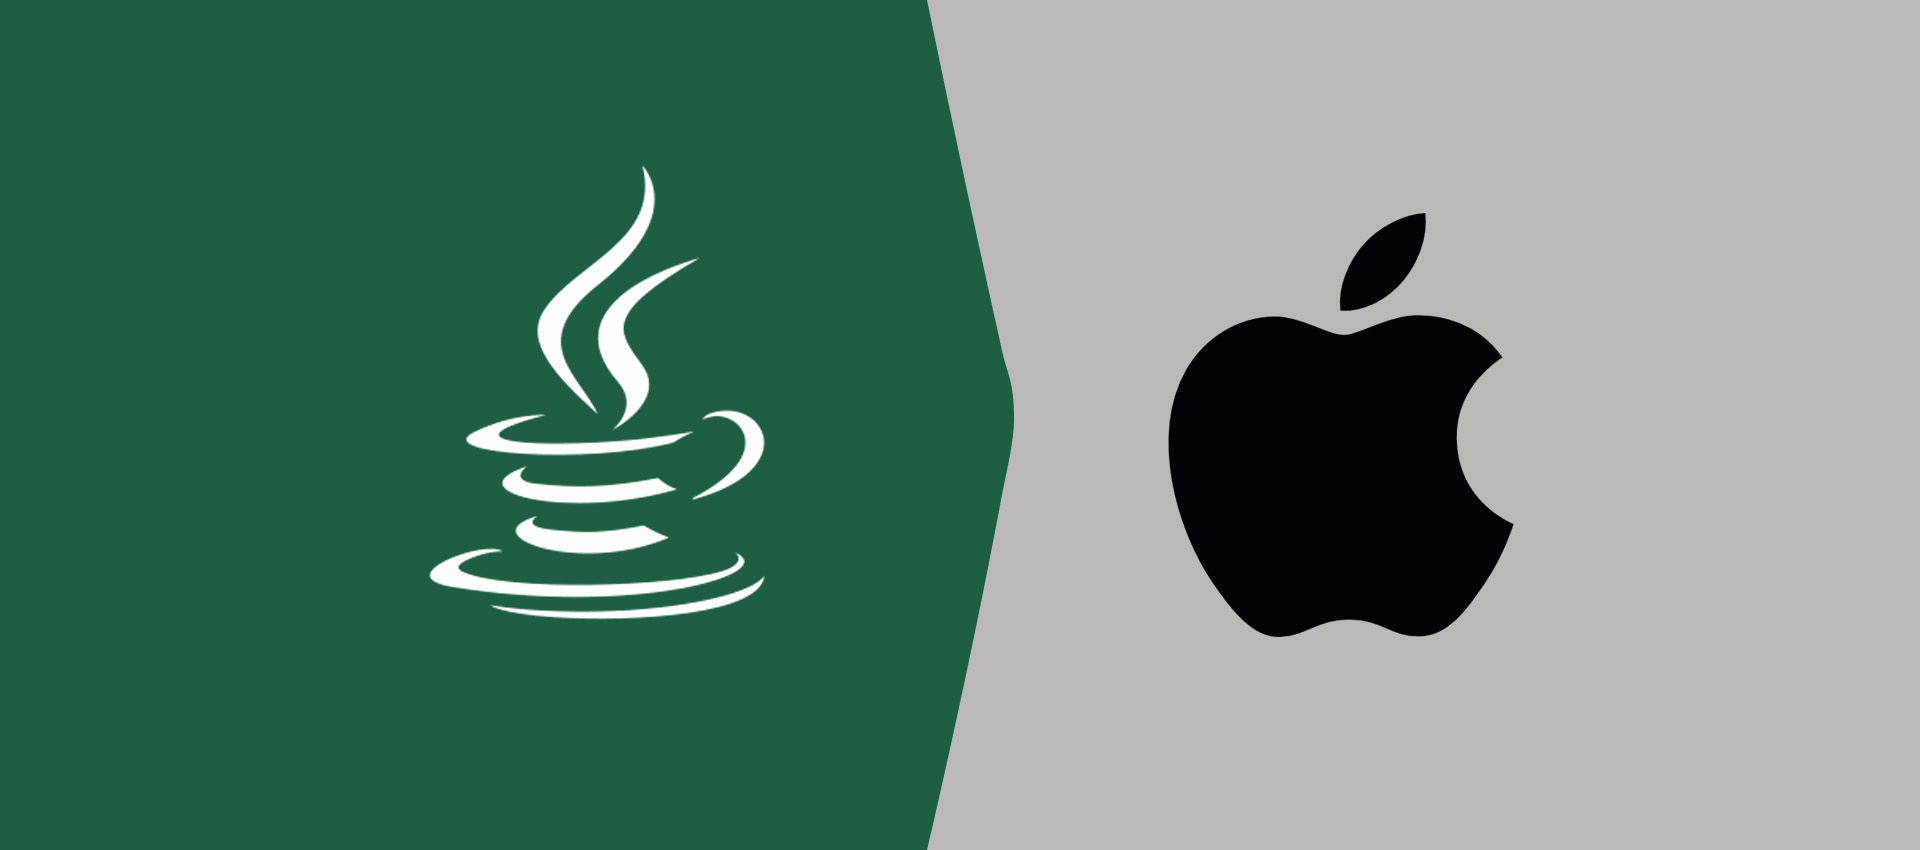 How To Switch Java Version On Mac